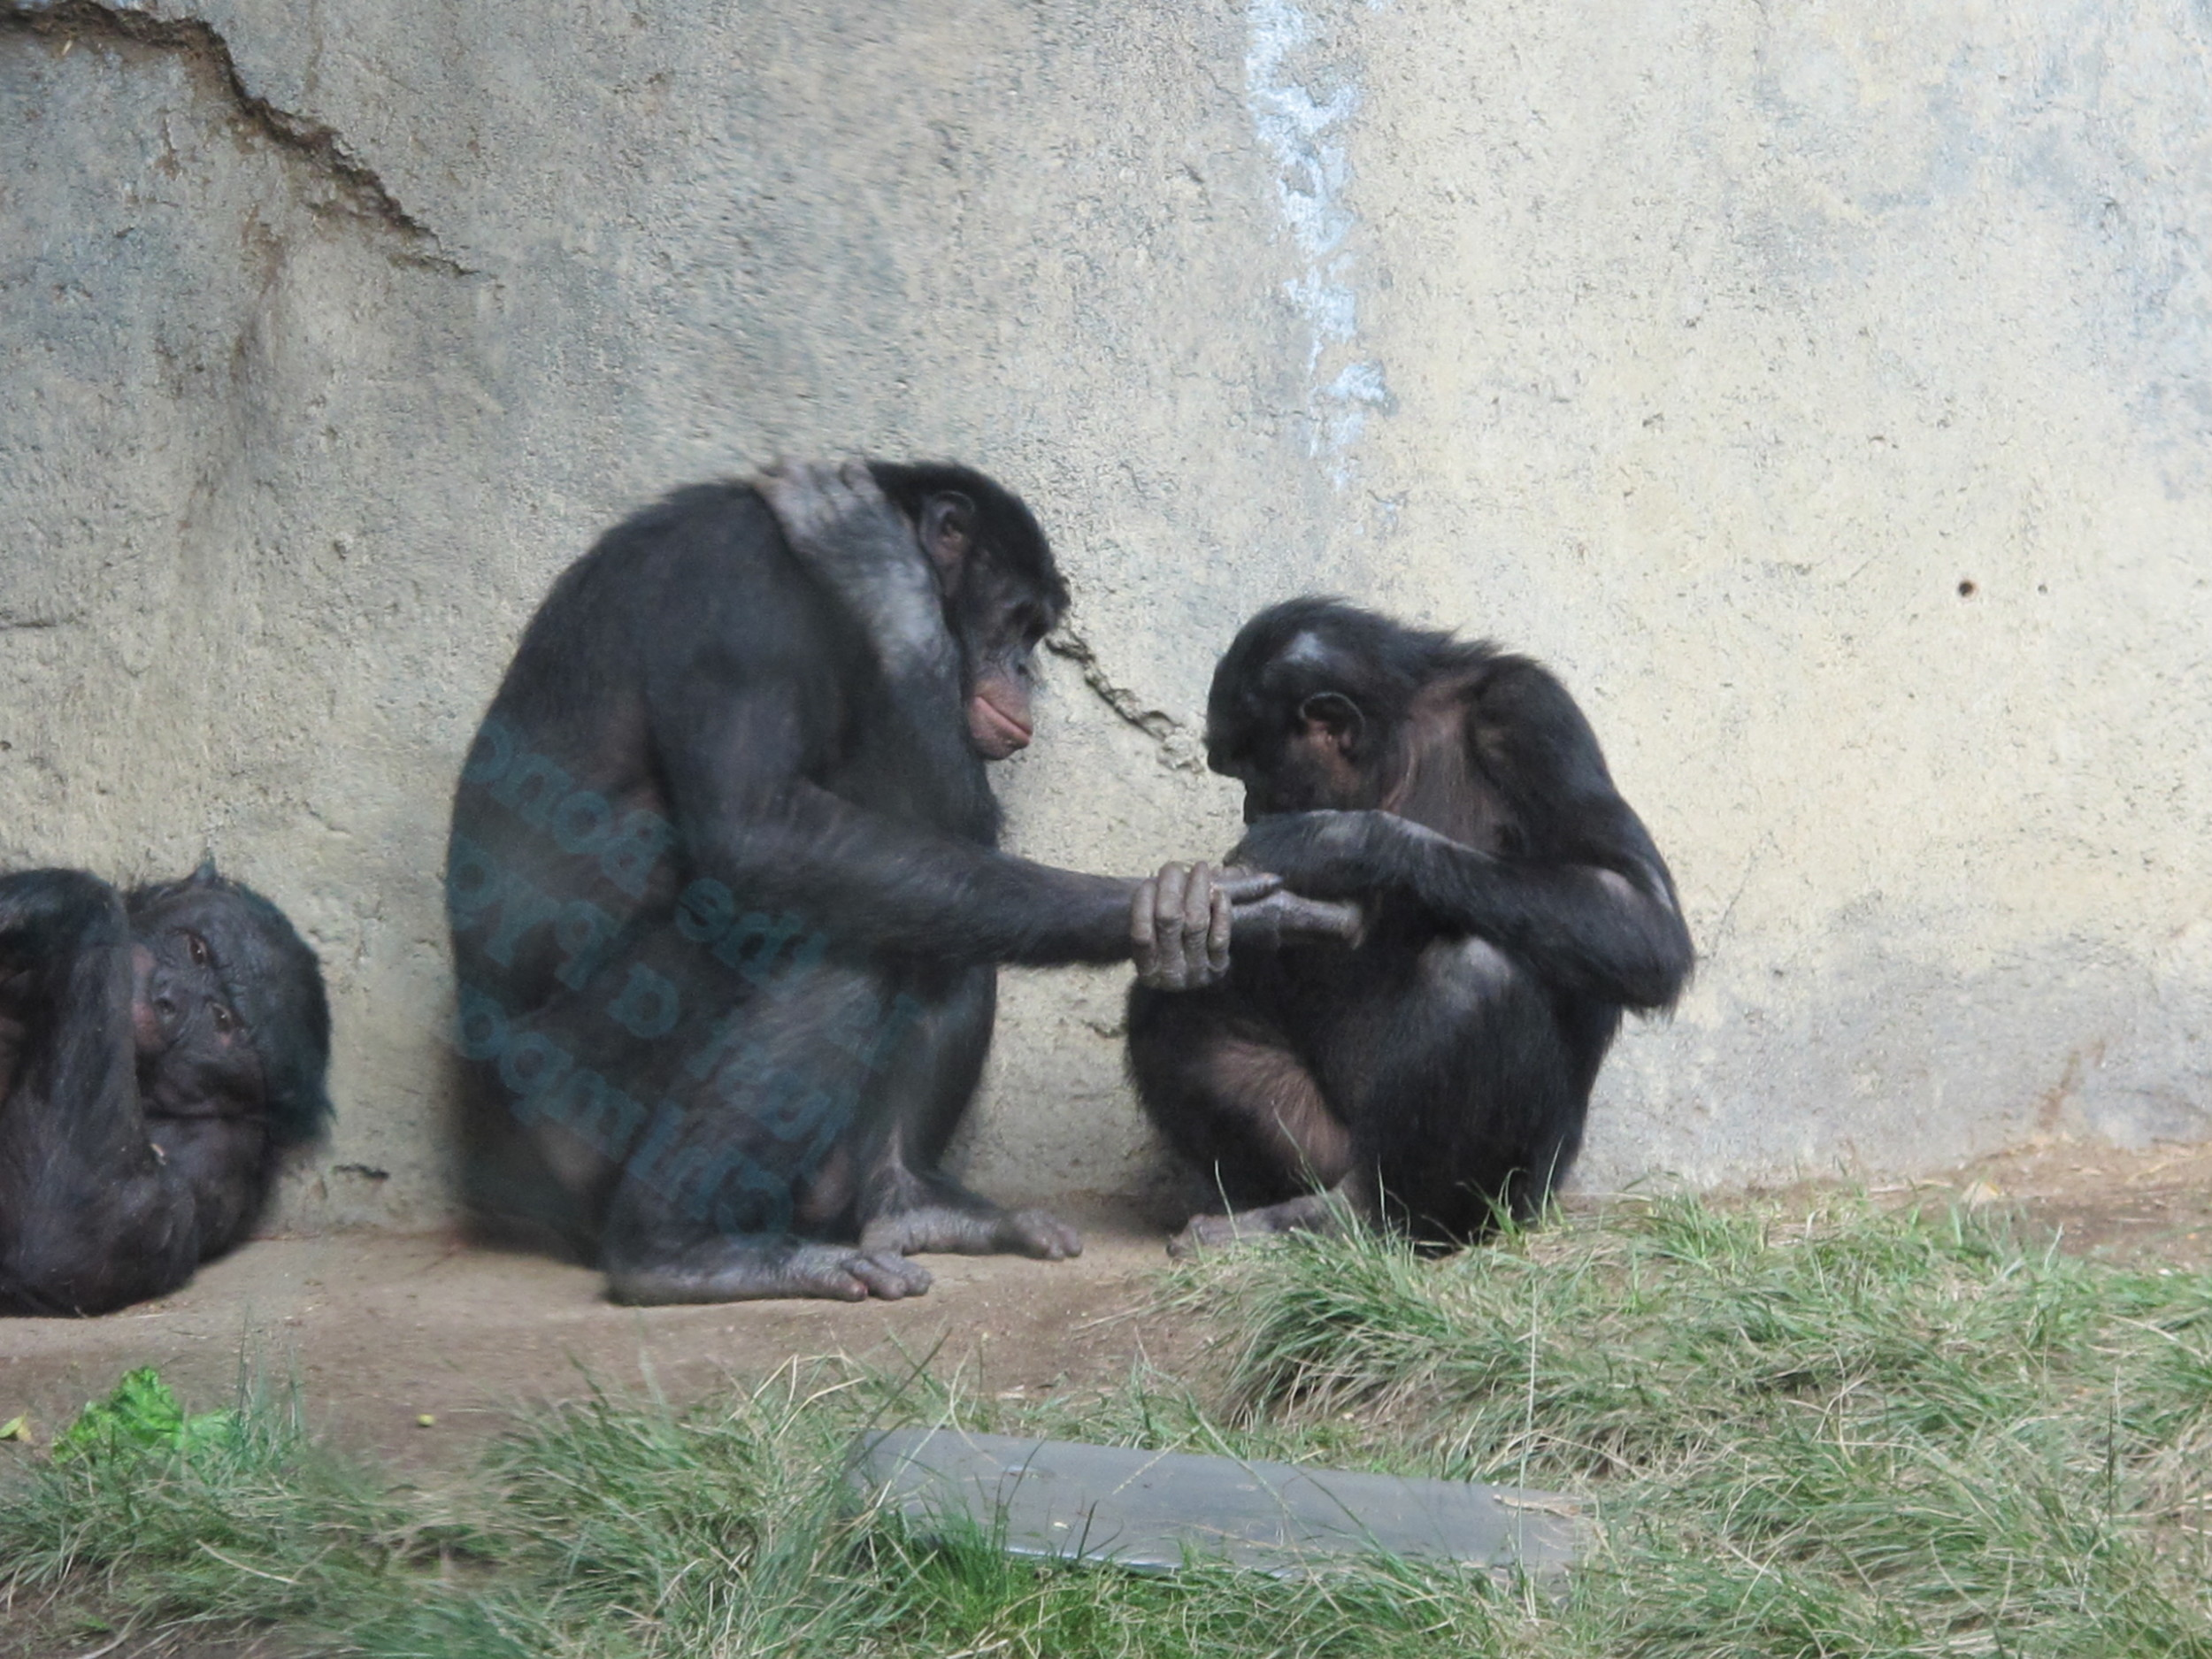 Bonobos at the San Diego Zoo. Bonobos, which were once known as pygmy chimps, are humans' closest relatives along with chimpanzees—but we have pushed them toward extinction by  destroying their habitat and hunting them as bushmeat.